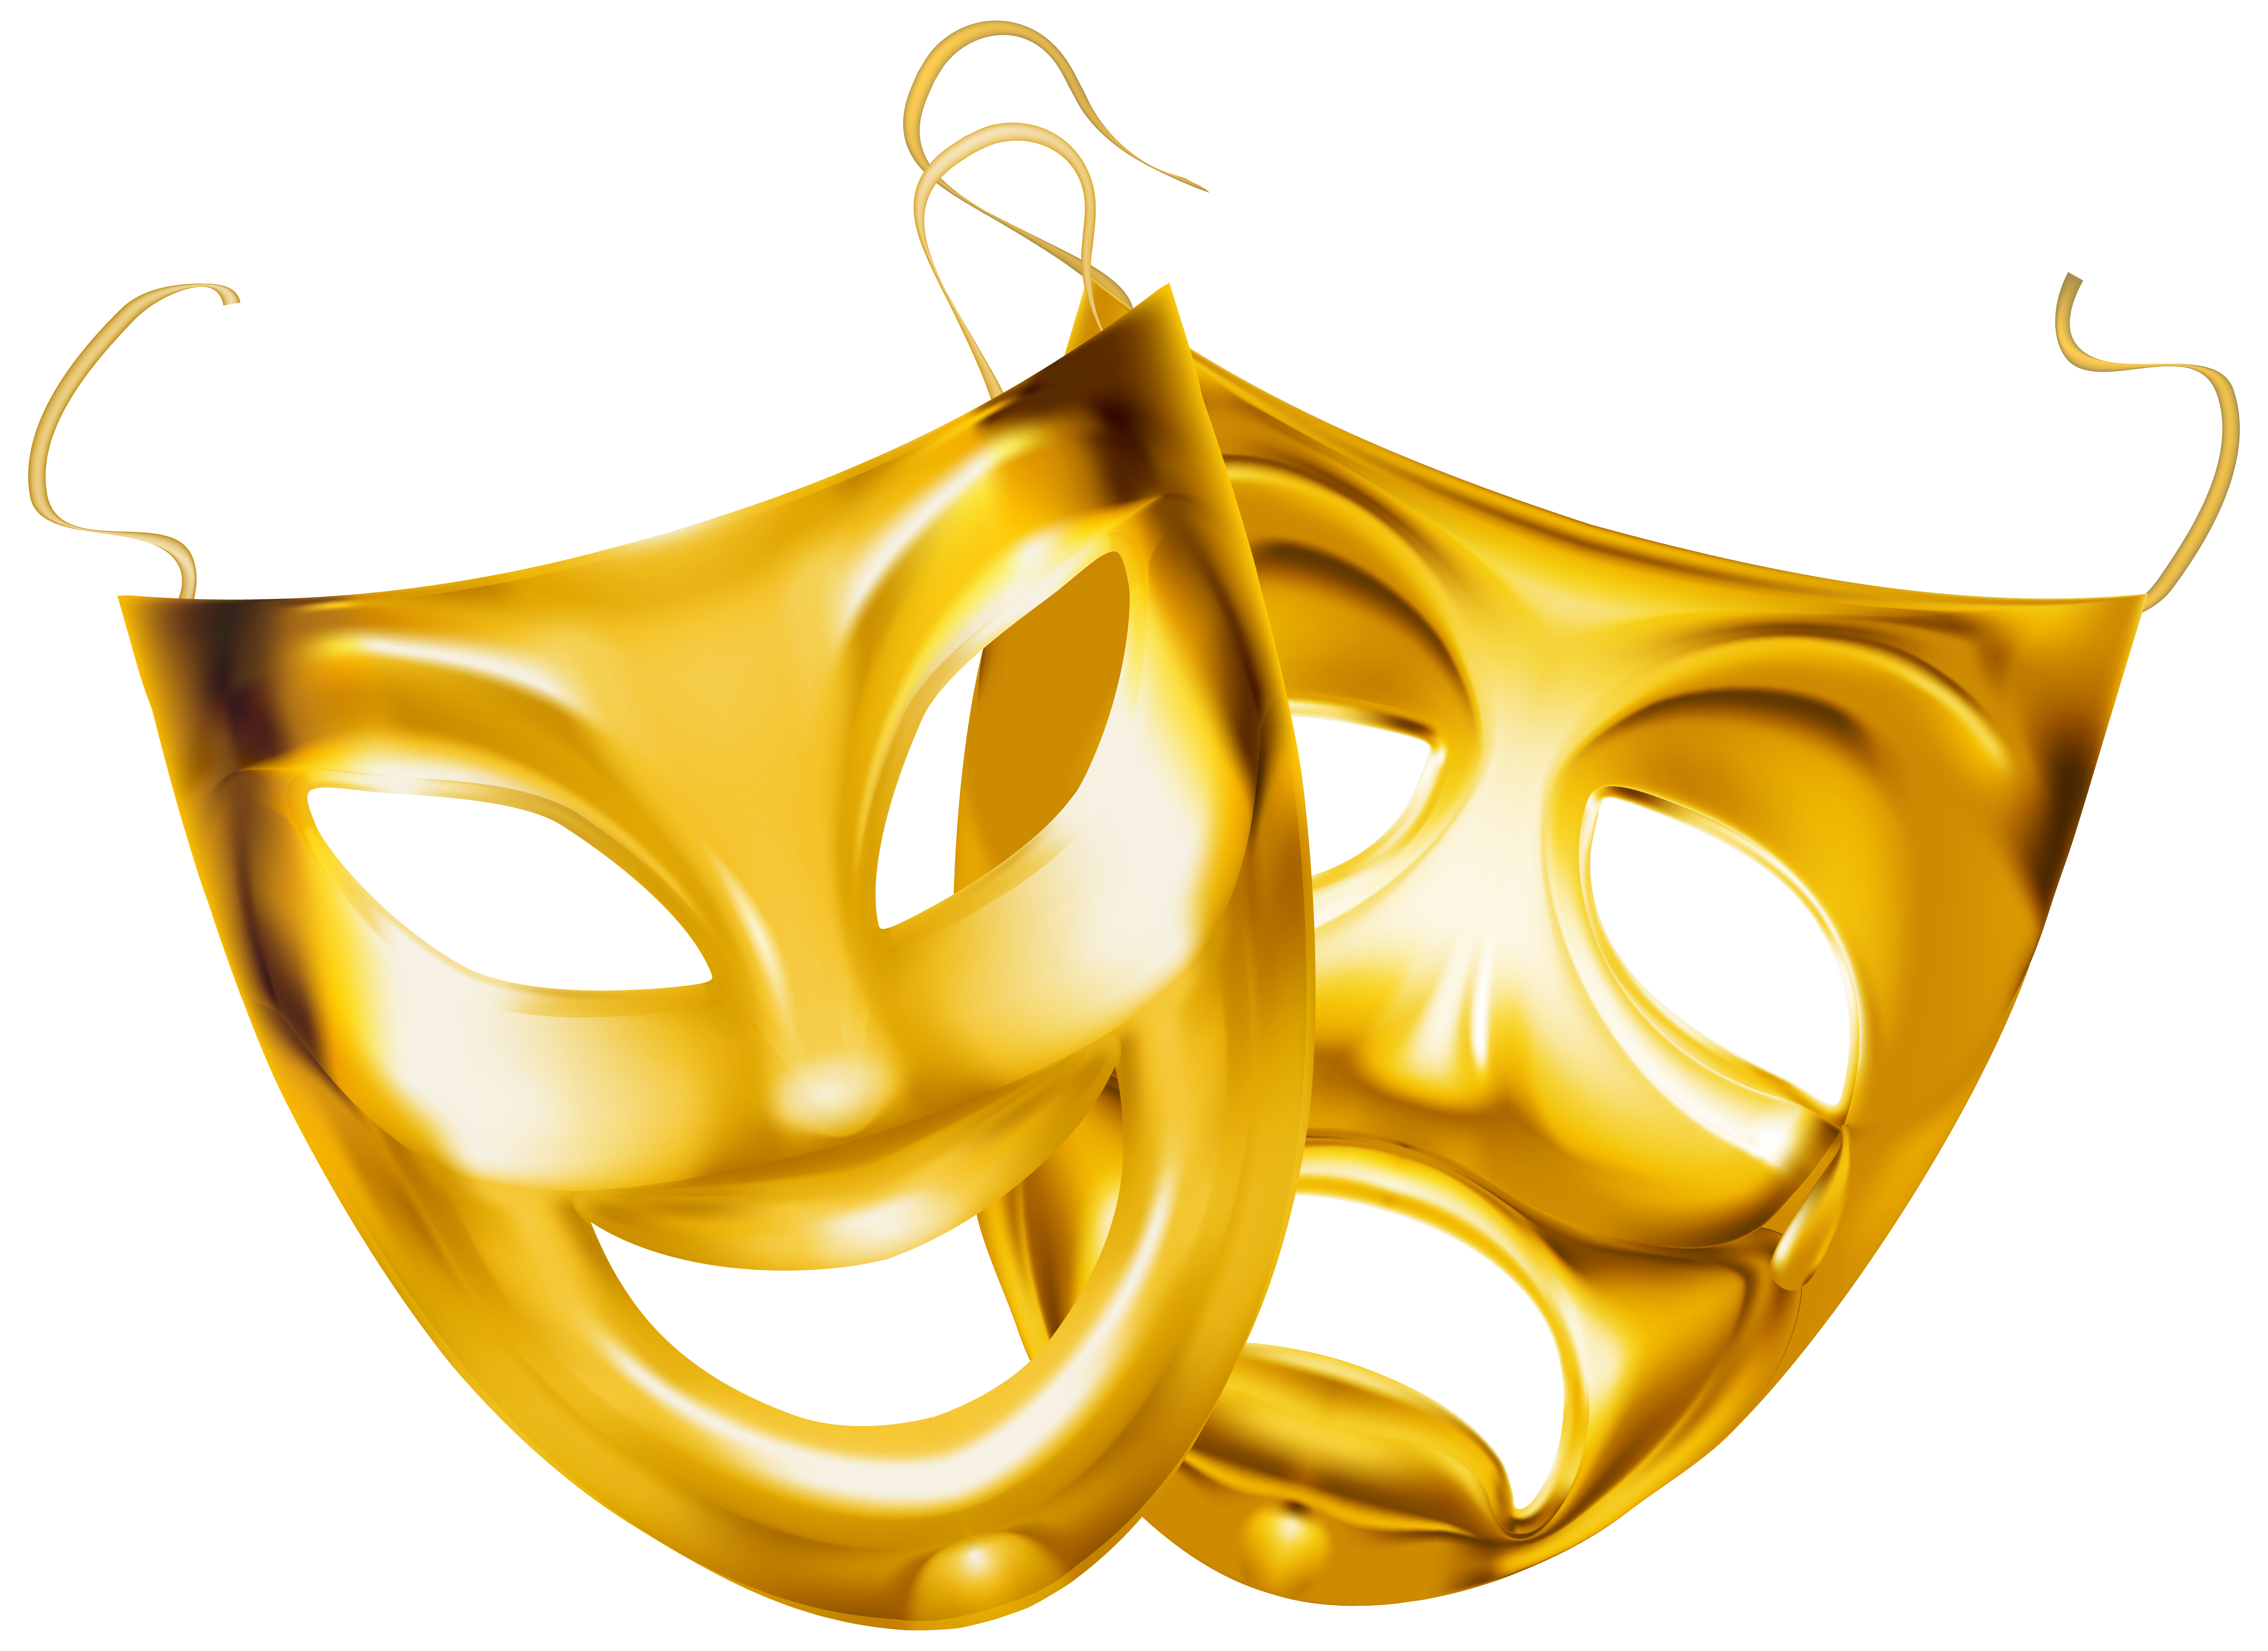 gold in the mouth clipart clipground comedy drama masks clipart Drama Symbol